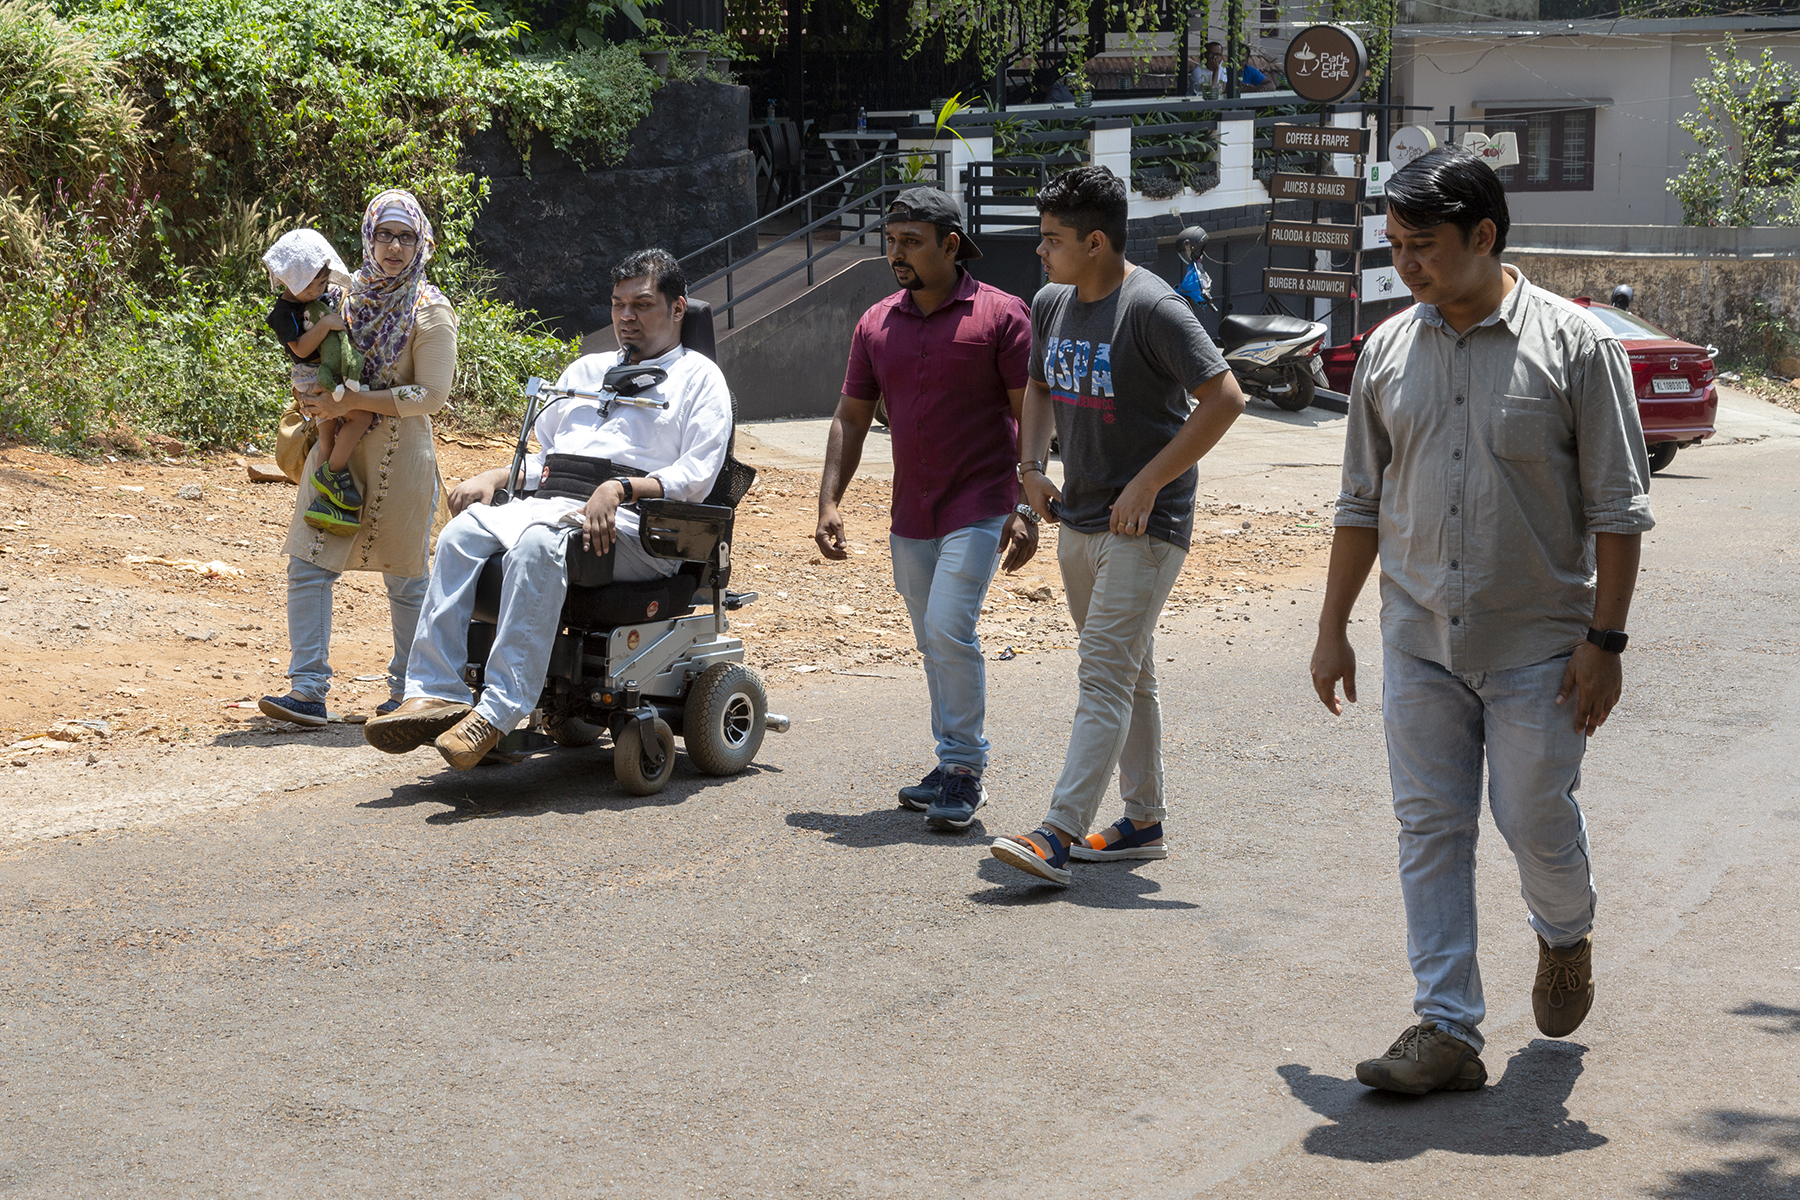 Jesfer in his wheelchair moves along a tarred road with family and friends. Walking beside him is his wife Fathima carrying their son Kenzal in her arms, his nephew and two male friends. Fathima wears a beige kameez and pale blue churidar with a multi-coloured head-covering. A white handkerchief is draped over Kenzal's head to shield him from the sun. Jesfer wears light blue jeans and a pale blue full-sleeve shirt. His nephew wears beige jeans and black T-shirt. Both his friends wear pale blue jeans; one has on a maroon T-shirt and the other, a light grey shirt with sleeves rolled up to the elbow.